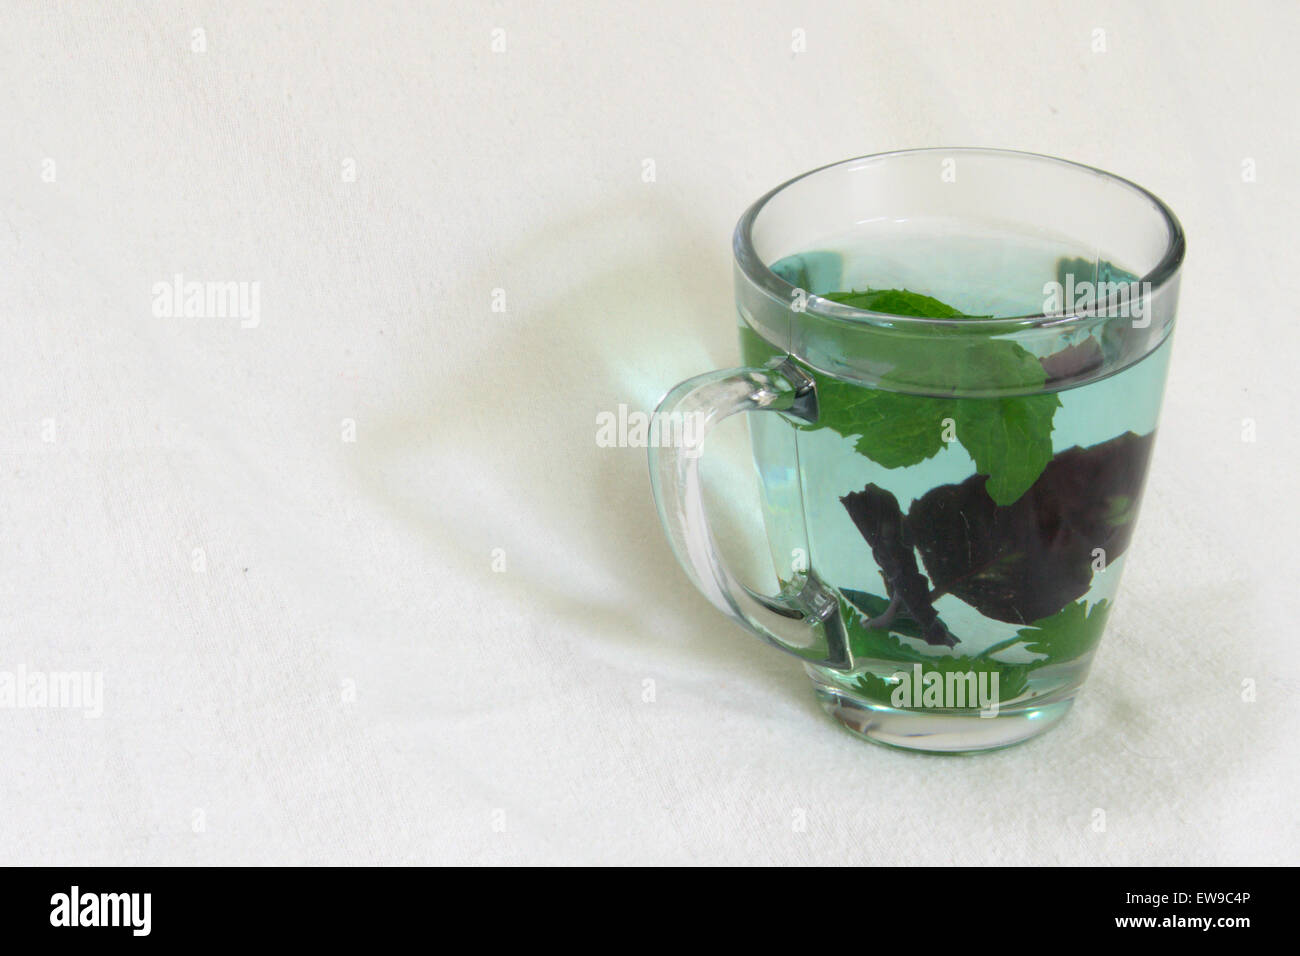 Fresh herbal infusion in a clear glass - Stock Image